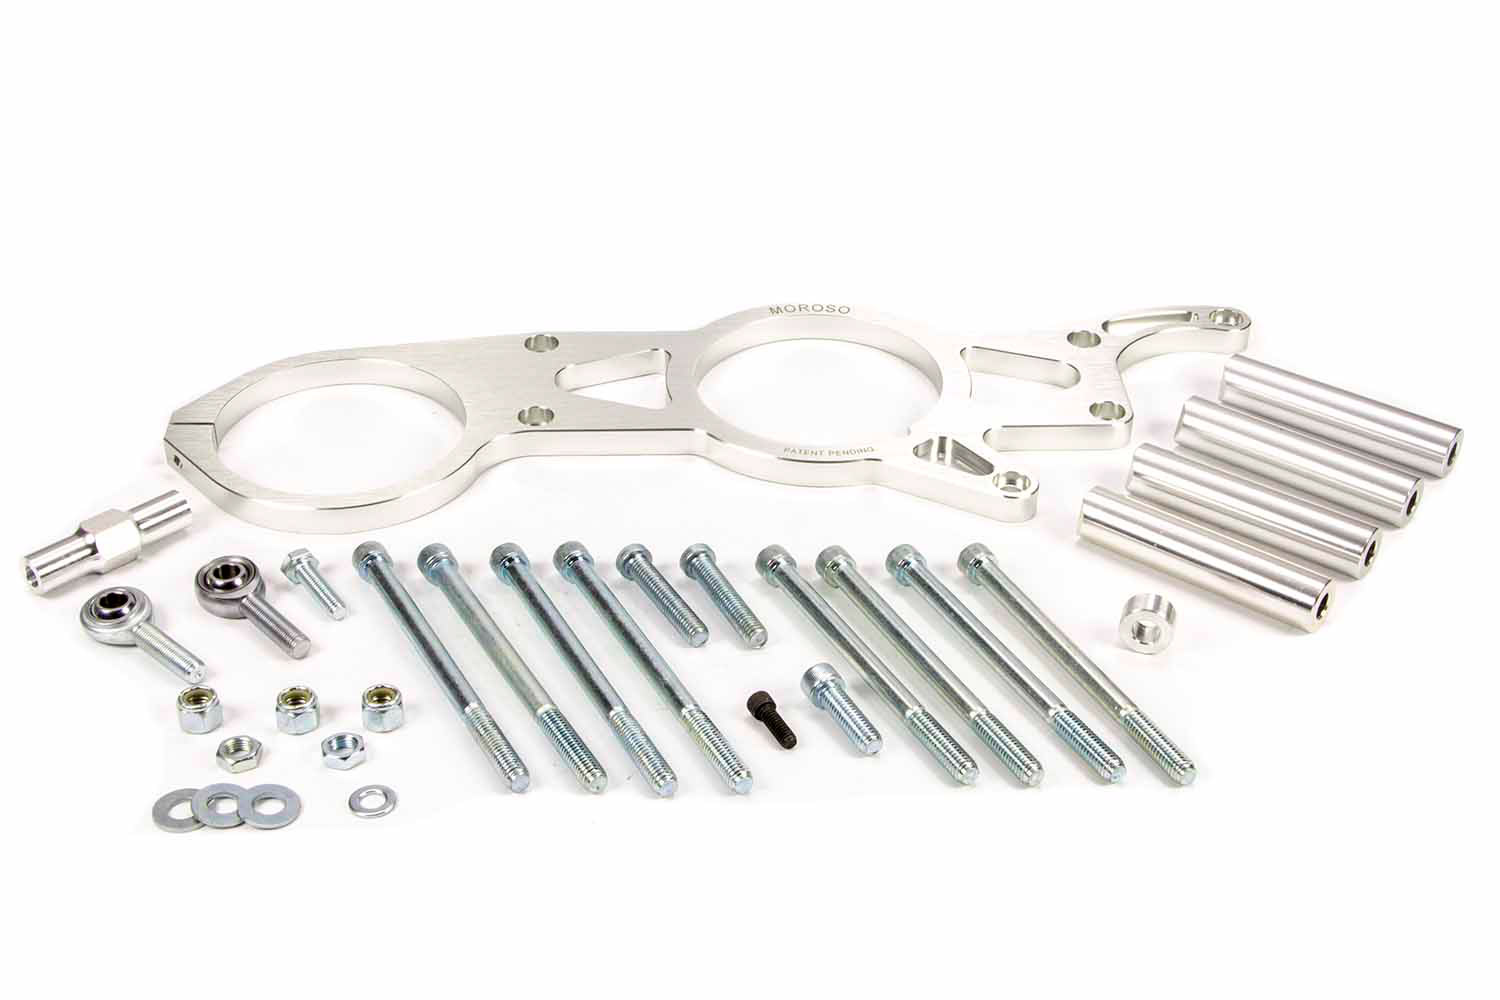 Vw Engines Parts 1300 1600 Cc Based additionally Learn Crossbow Basics as well How To Select The Right Accessory Drive Brackets For A Gm Ls V8 Swap moreover Chrome additionally Aluminum Extension Ladder. on aluminum pulleys